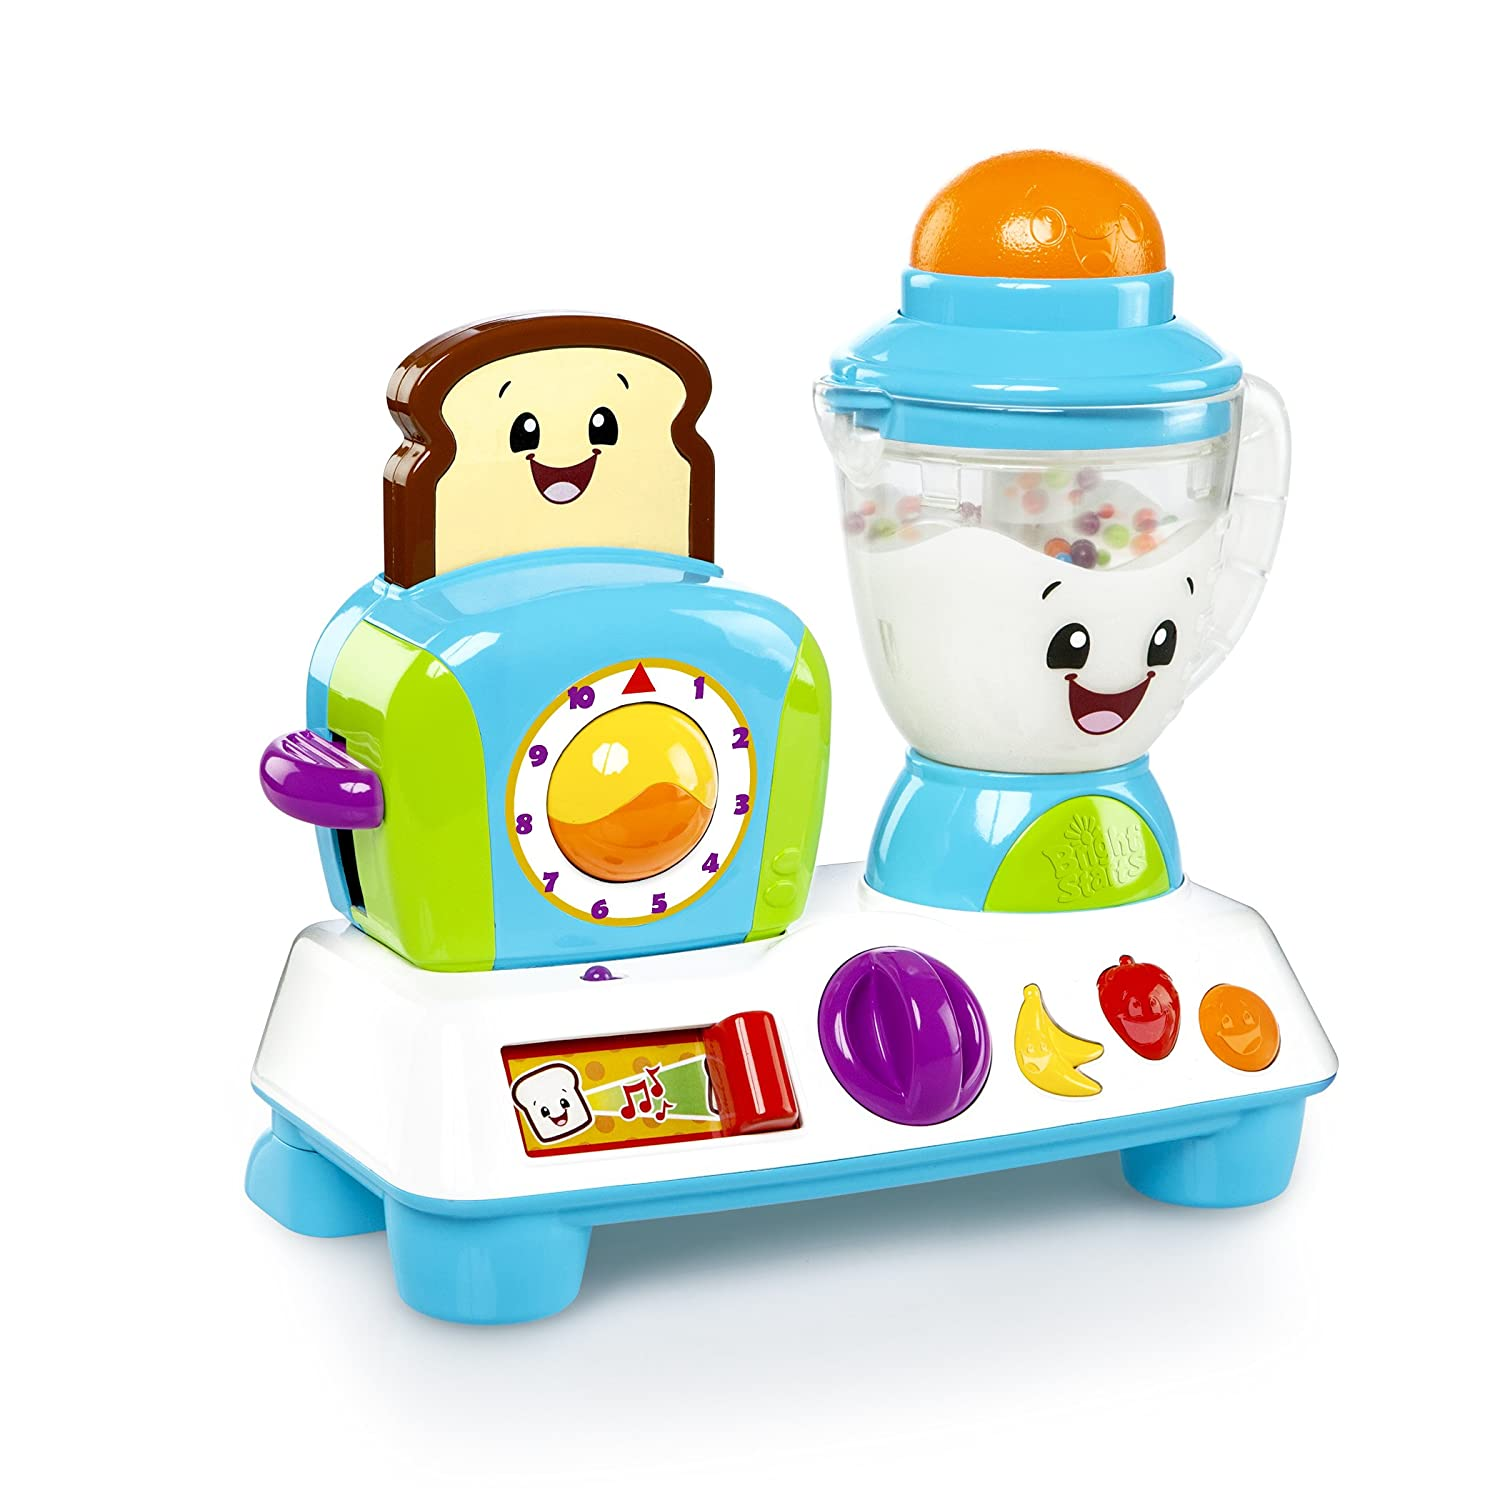 Bright Starts Giggling Gourmet Rise n Dine Busy Cafe Amazon Baby